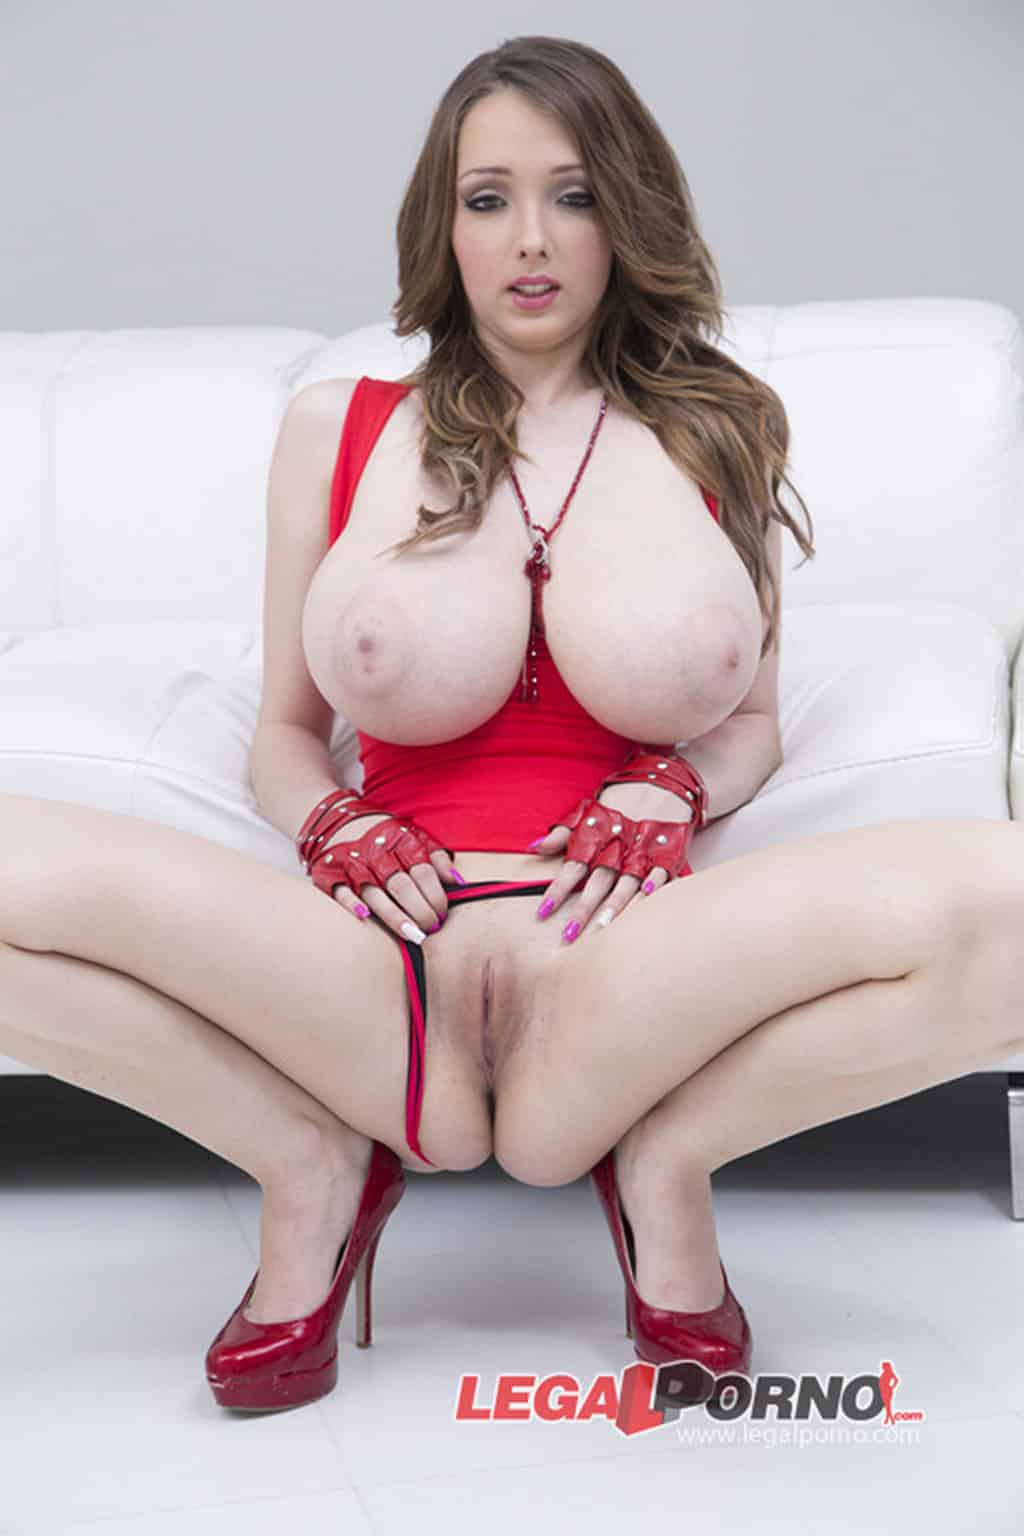 Aupa Atletic Video Porno torbe out of jail, aupa athletic, leanne crow red bikini